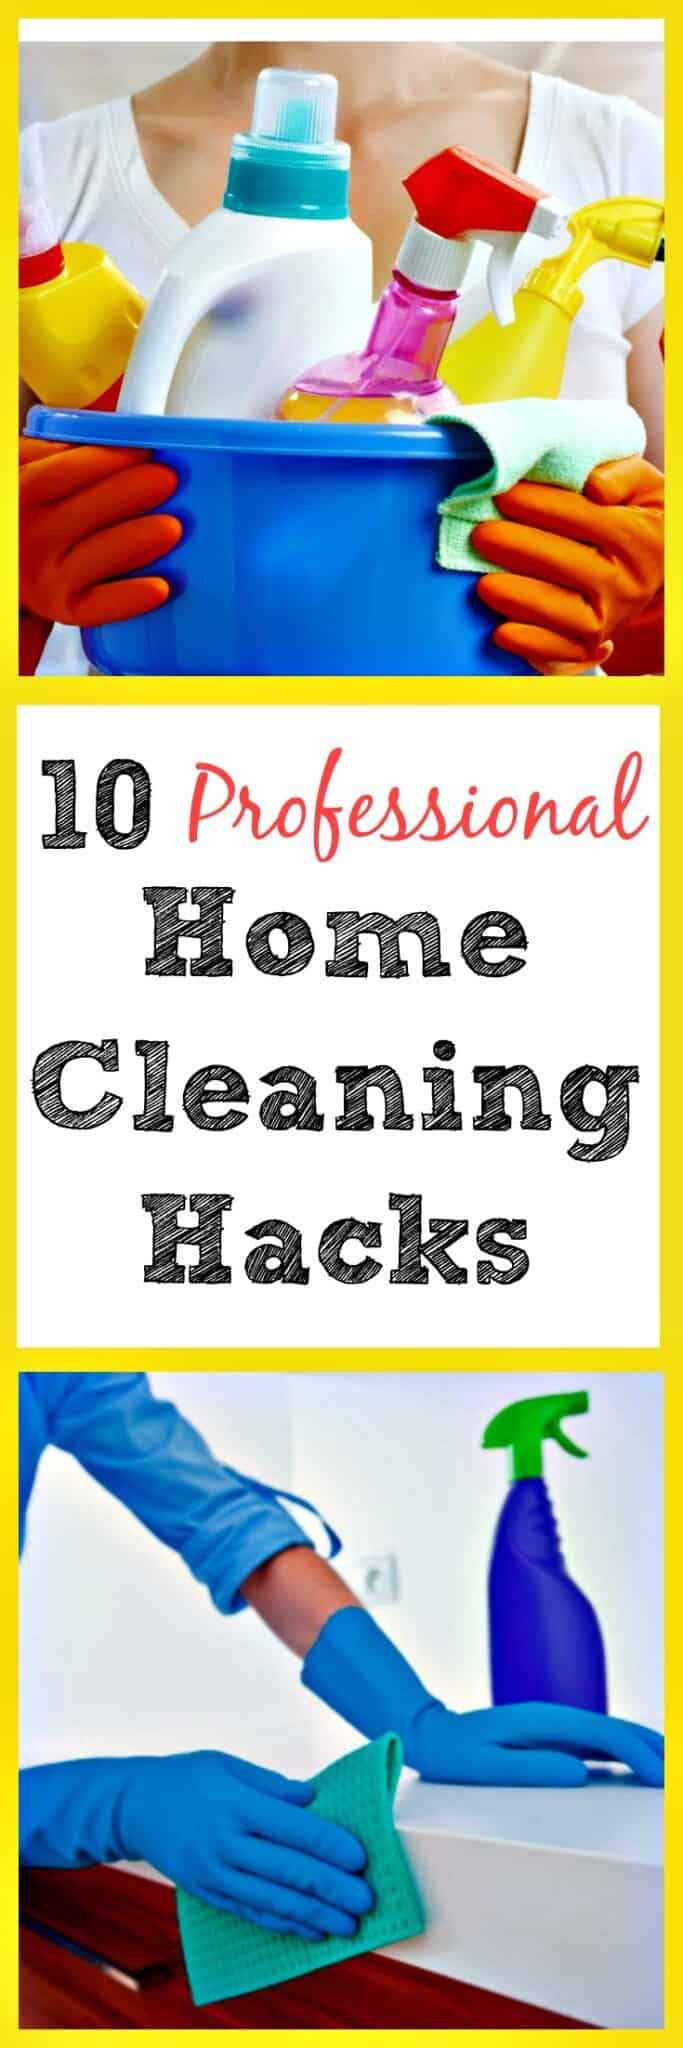 10 Professional Home Cleaning Hacks - These cleaning tips are so clever! #cleaning #cleaningadvice #cleaninghacks #deepcleaning #springcleaning